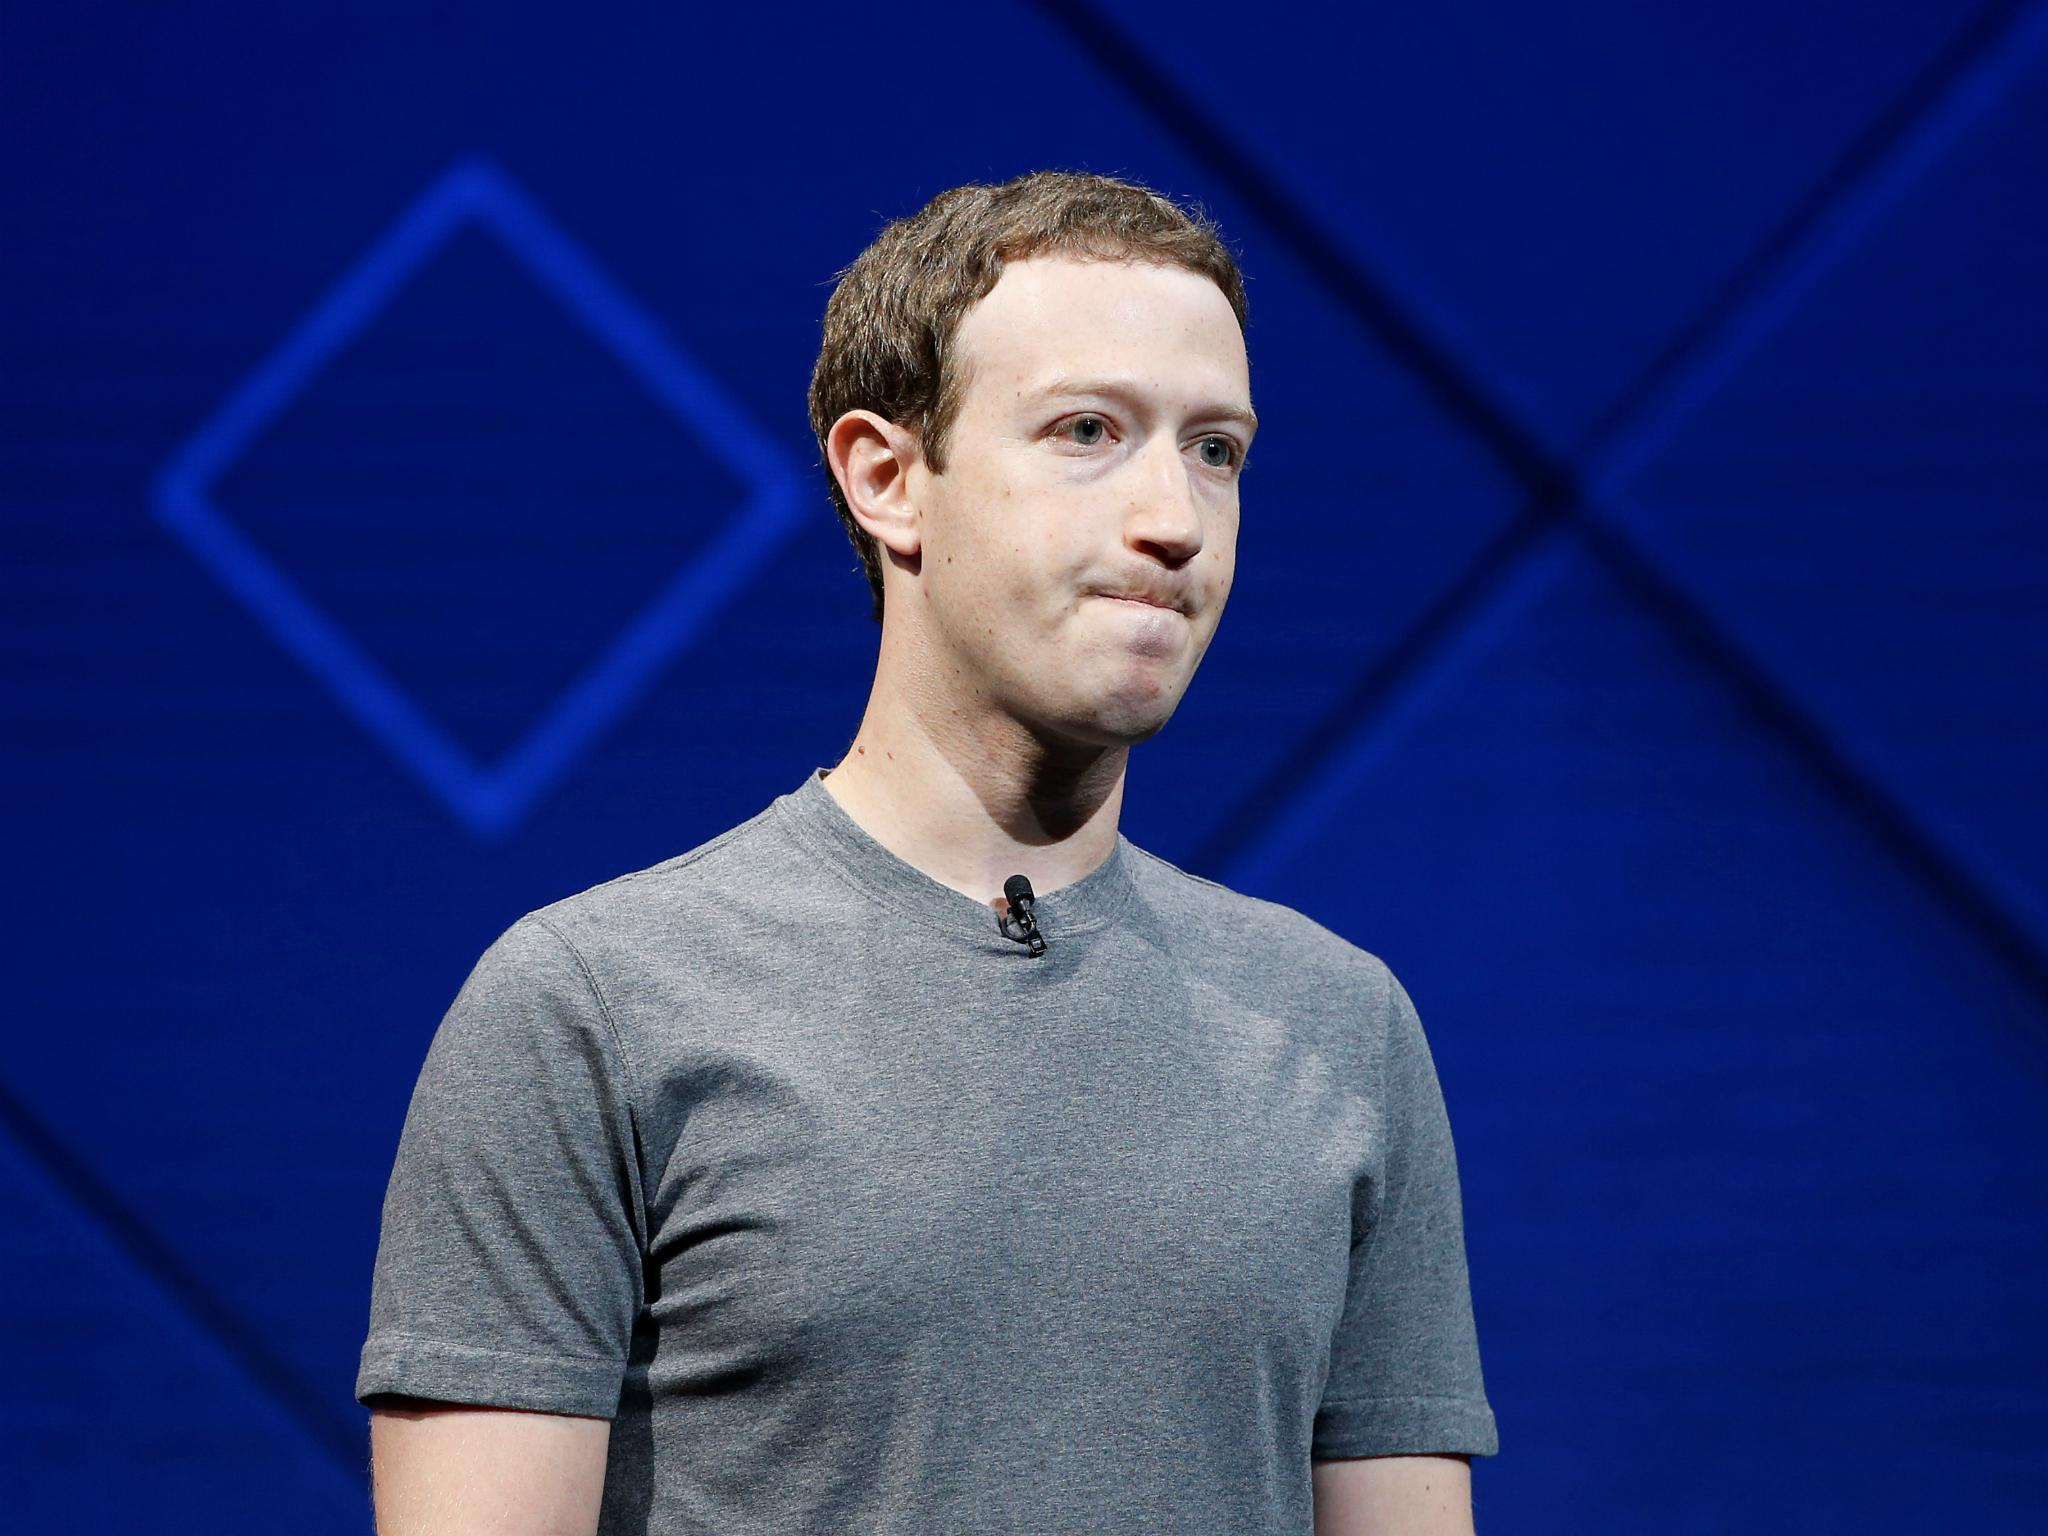 One day in the life of Mark Zuckerberg